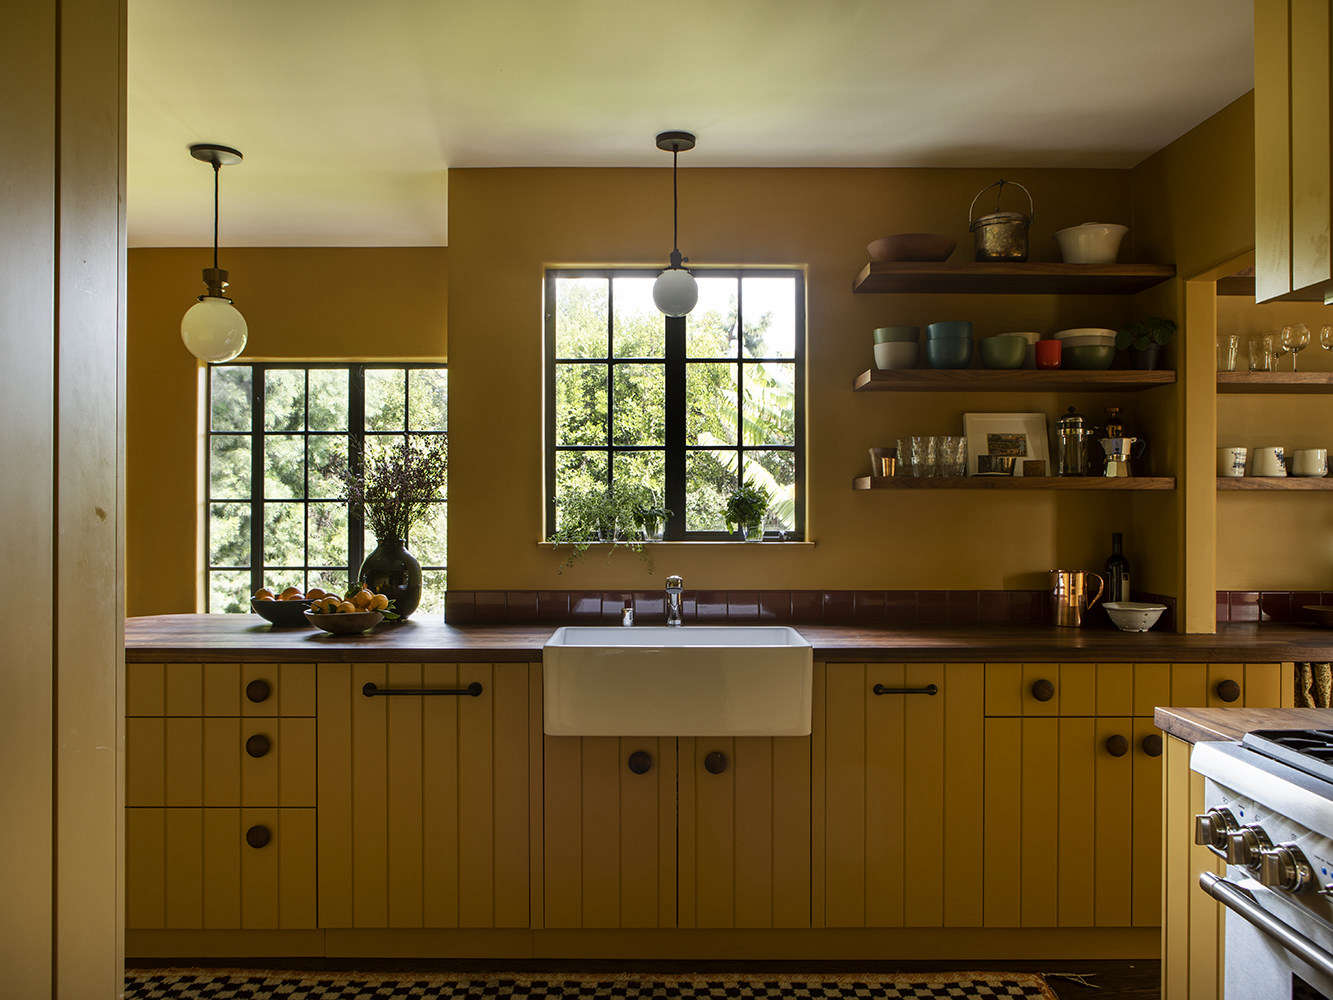 Oversized wood drawer knobs from Nice Knobs add personality, as does the open shelving, which allows the couple to display art and some of their more unique kitchen items. A single row of Interceramic tiles (in Wineberry) forms the backsplash.